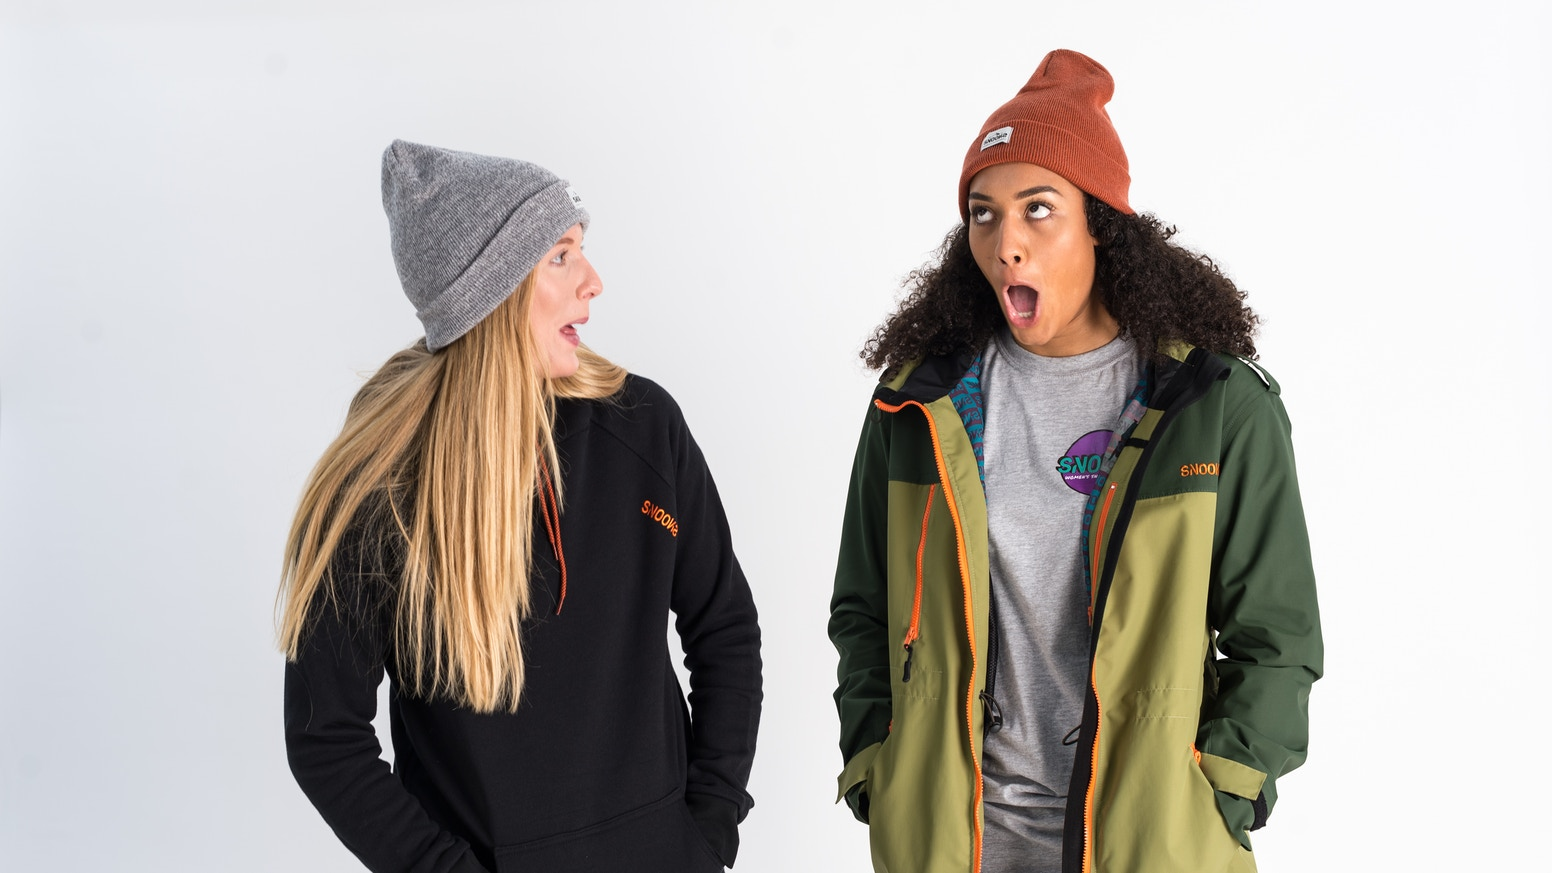 Exclusive ski & snowboard outerwear for women, designed by women. Fit, style, function and performance guaranteed. Made in the U.K.